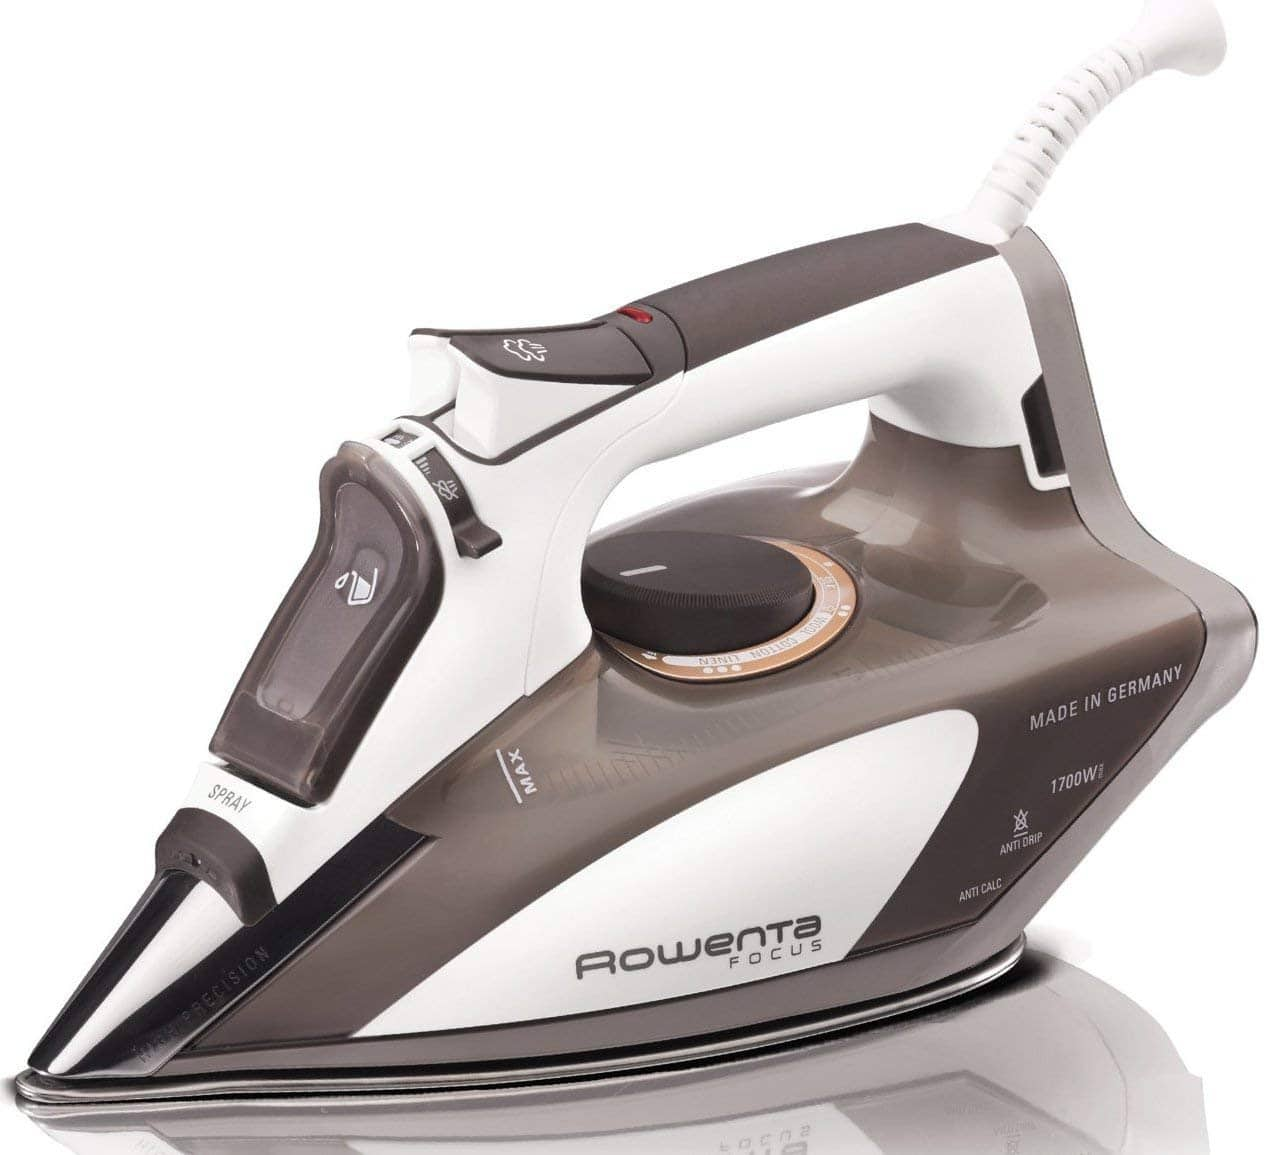 Rowenta 1700-Watt Micro Steam Iron Stainless Steel Soleplate with Auto-Off, 400-Hole, Brown, DW5080 $47.49